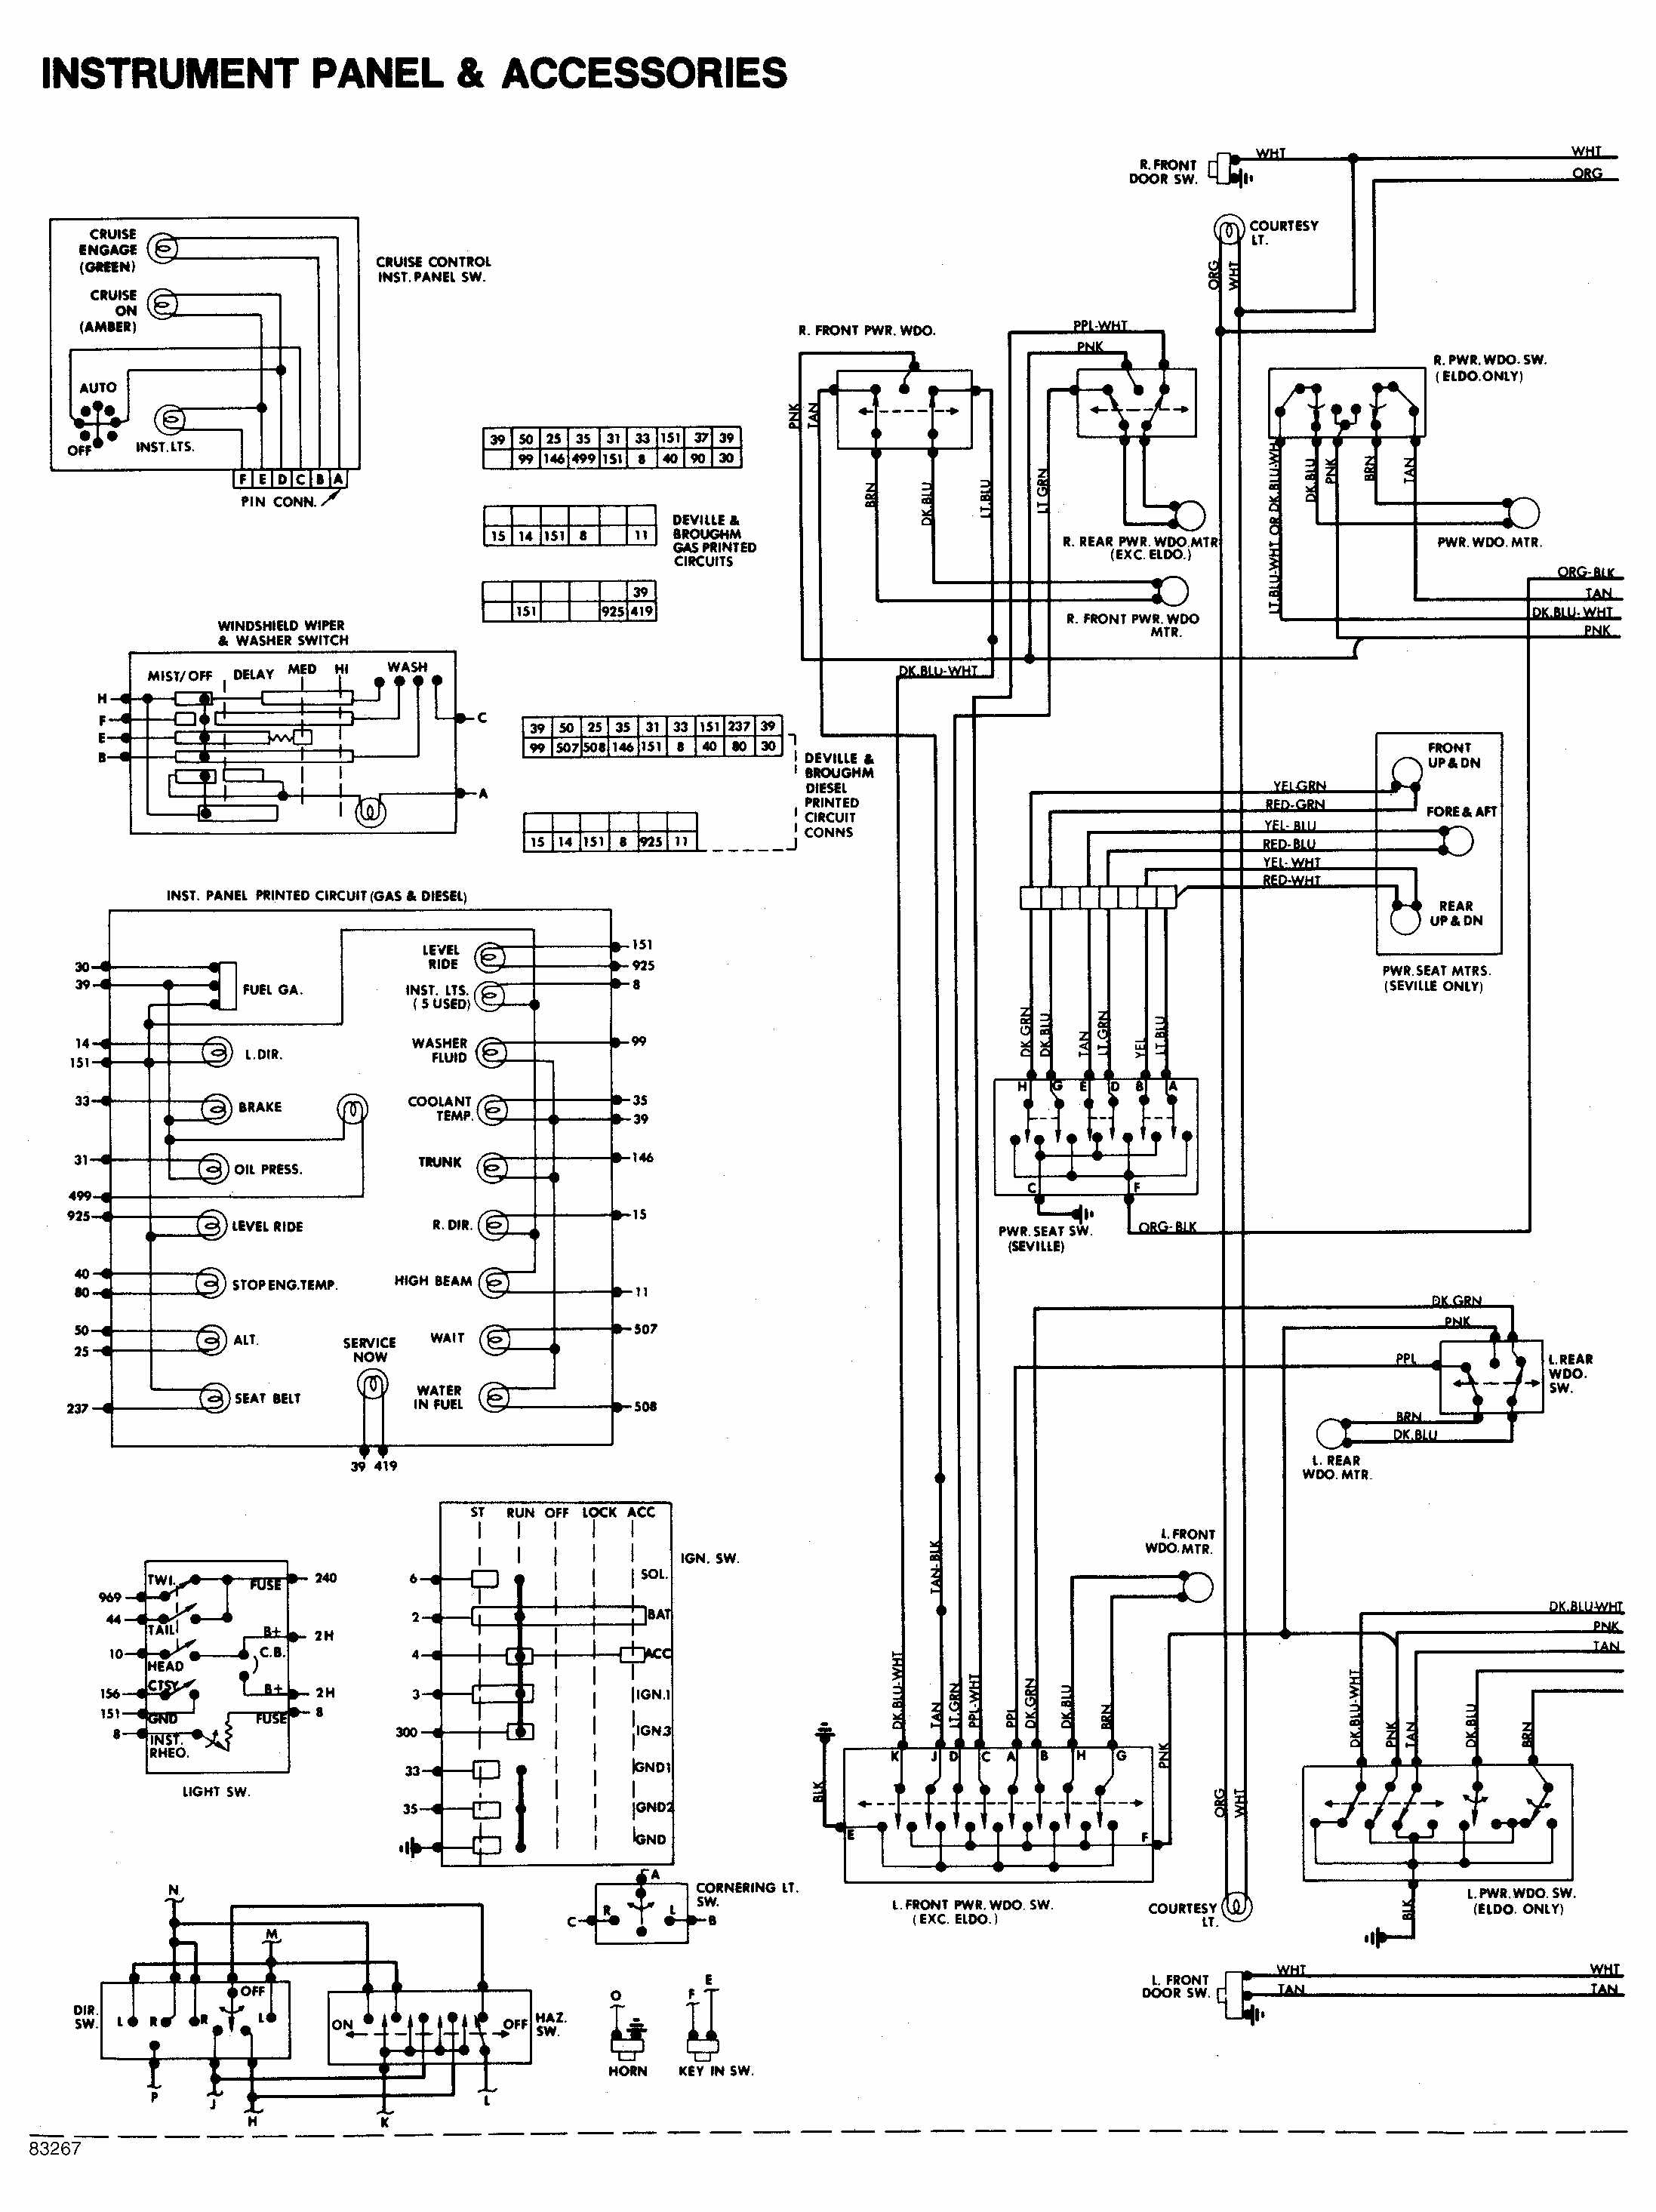 Complete Electrical Wiring Diagram 84 Chevy Nova Diagrams 1972 Chevrolet 1973